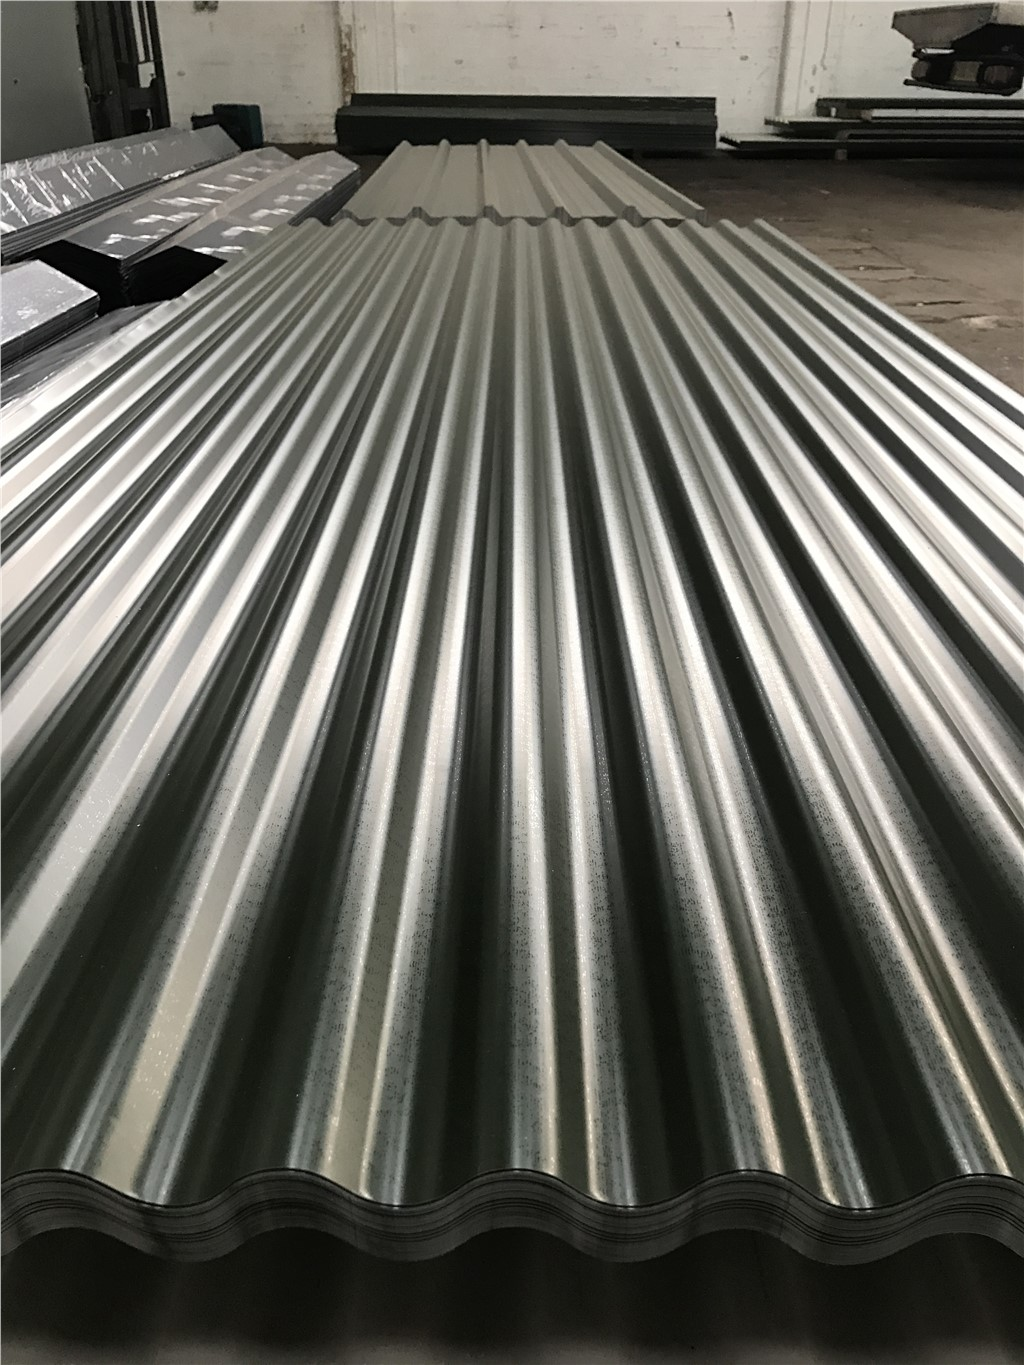 Corrugated Steel Cladding Roof Sheets Select Length And Colour Ebay